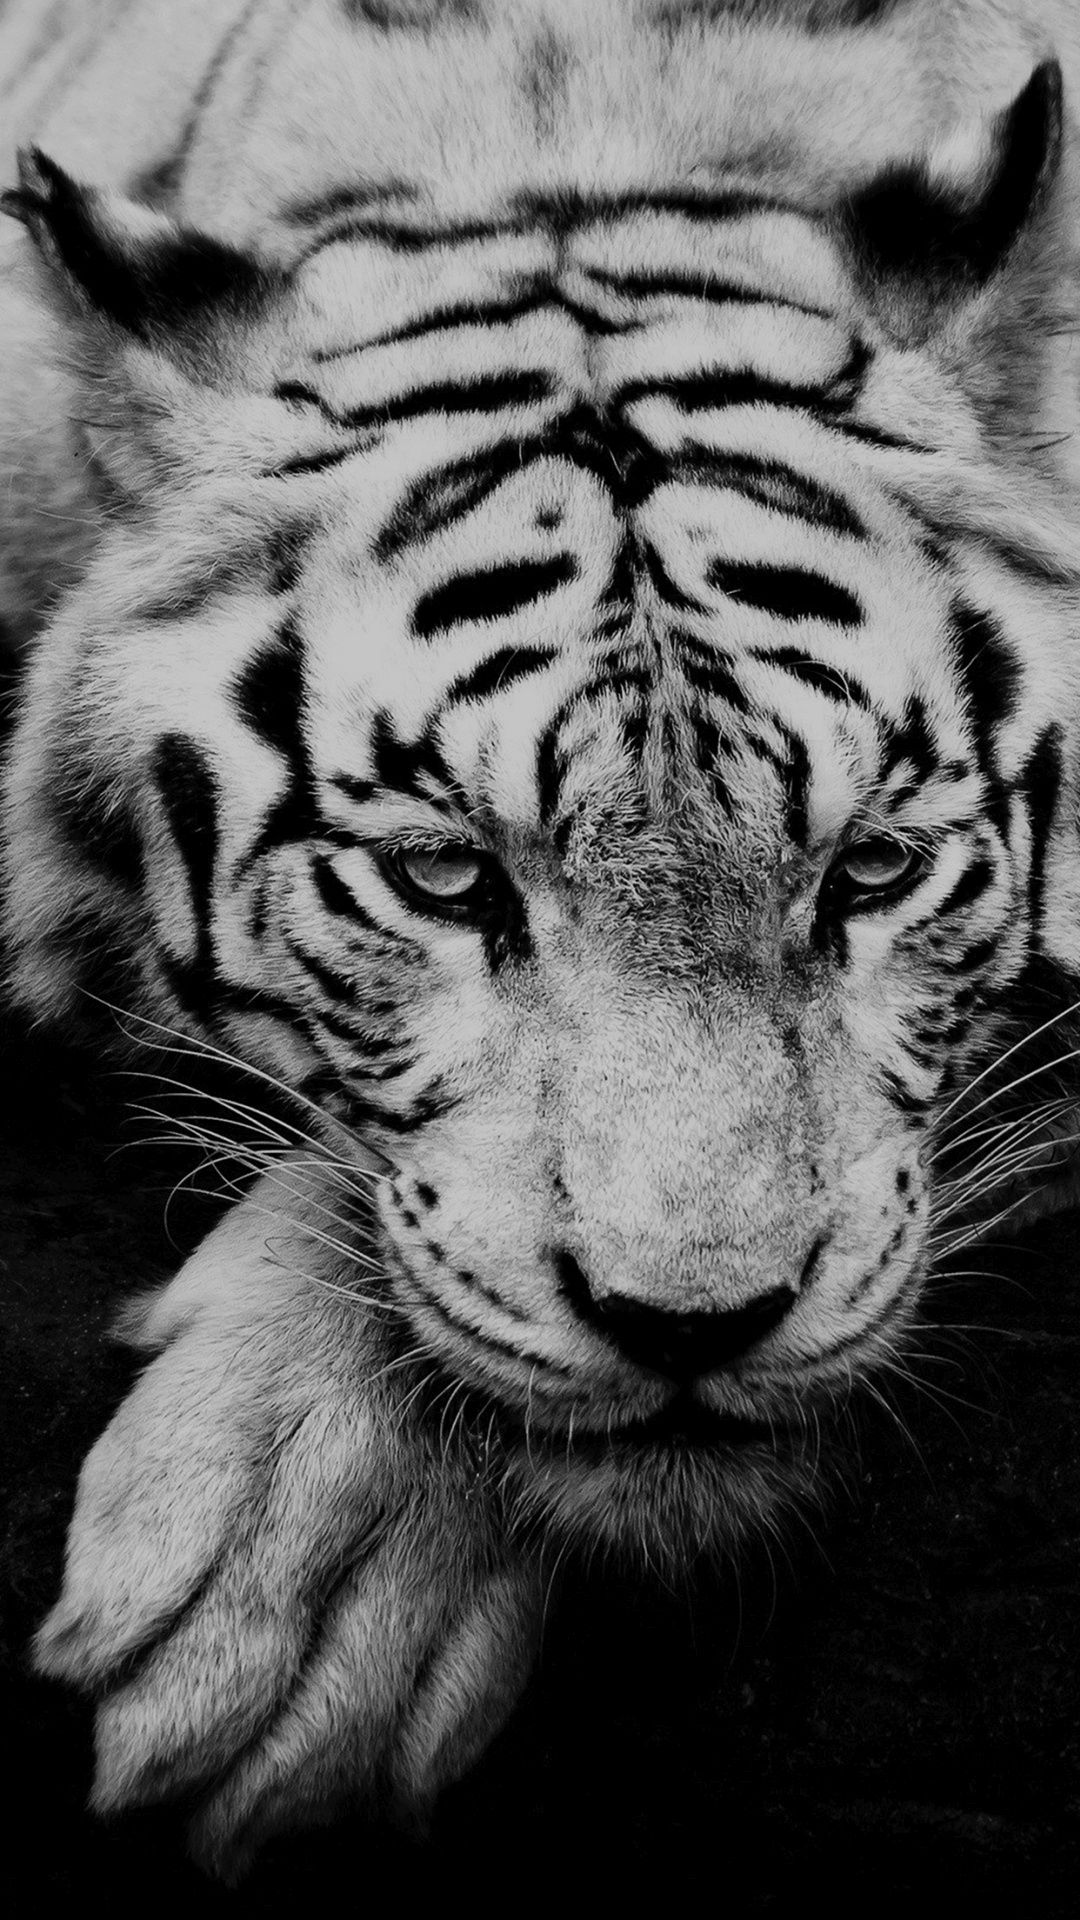 Tiger Iphone Wallpapers Top Free Tiger Iphone Backgrounds